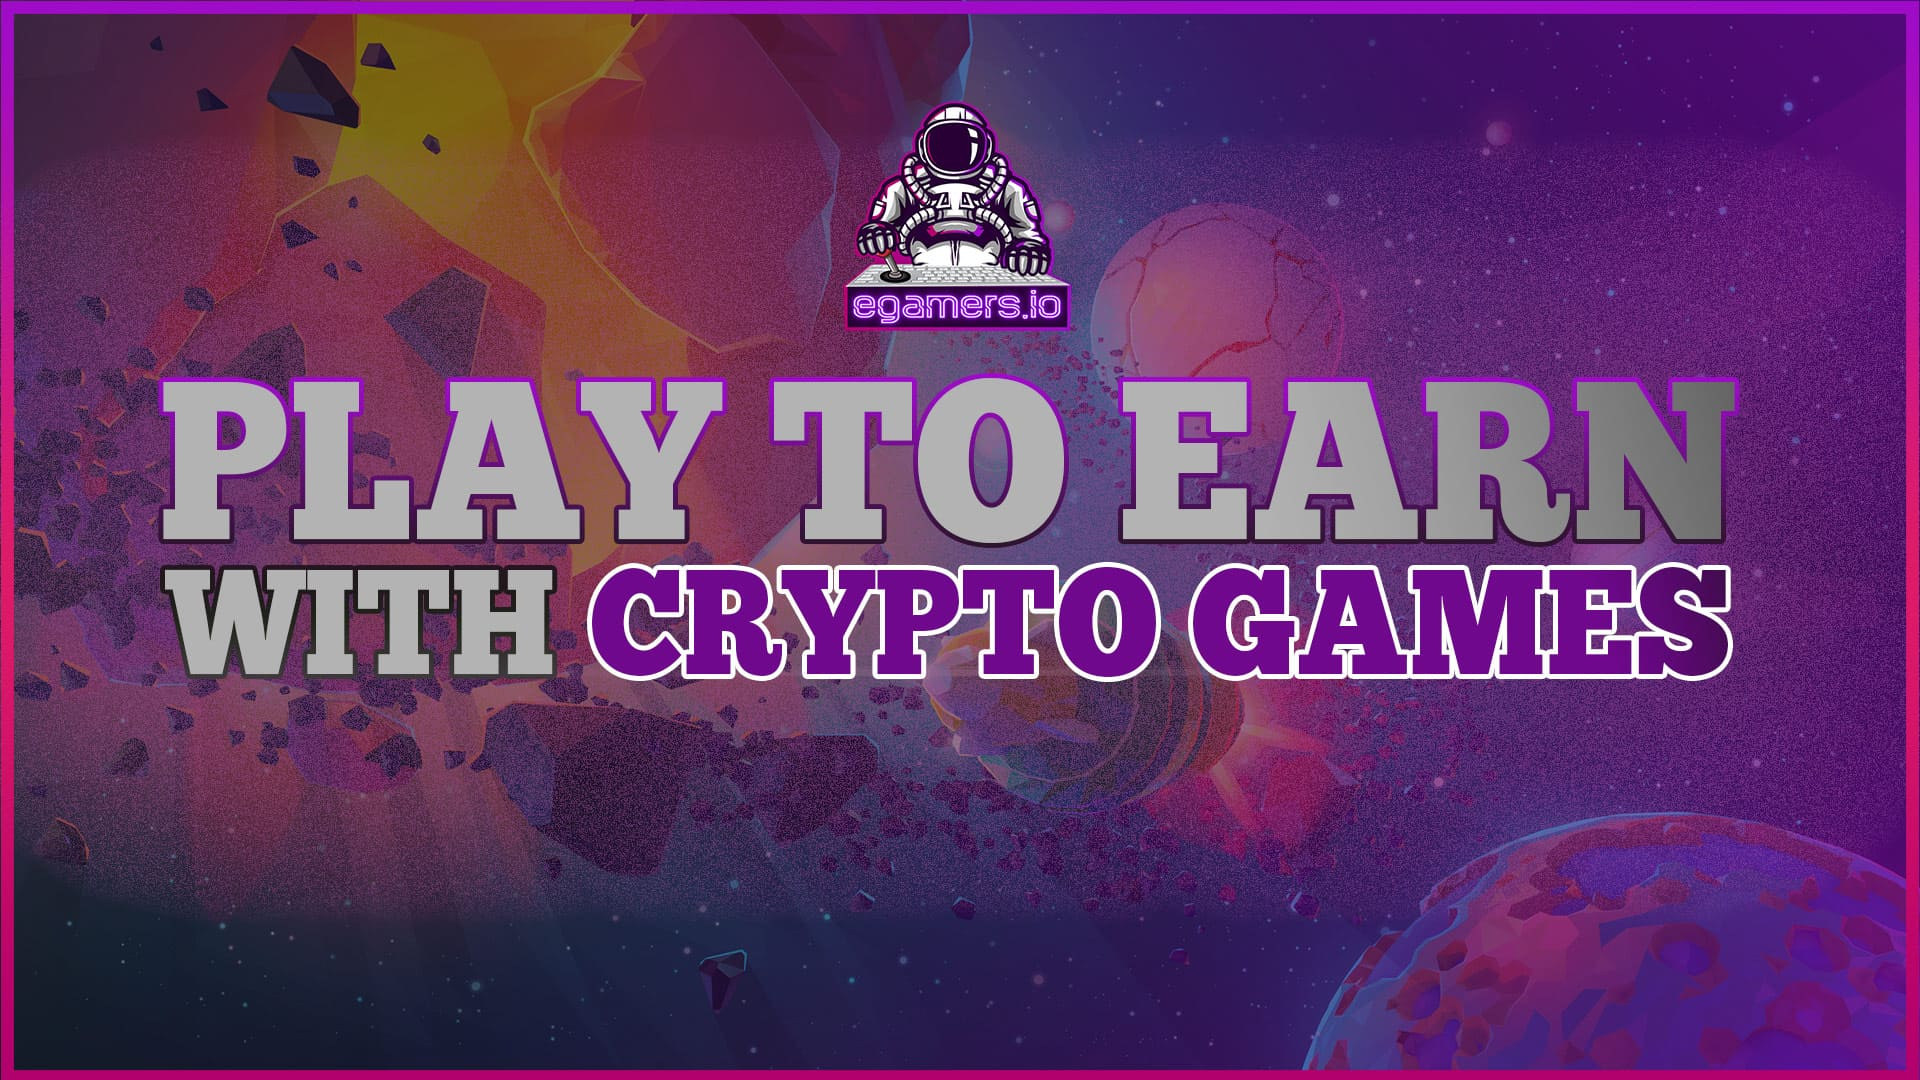 Play to earn with crypto games, nft's and the blockchain technology